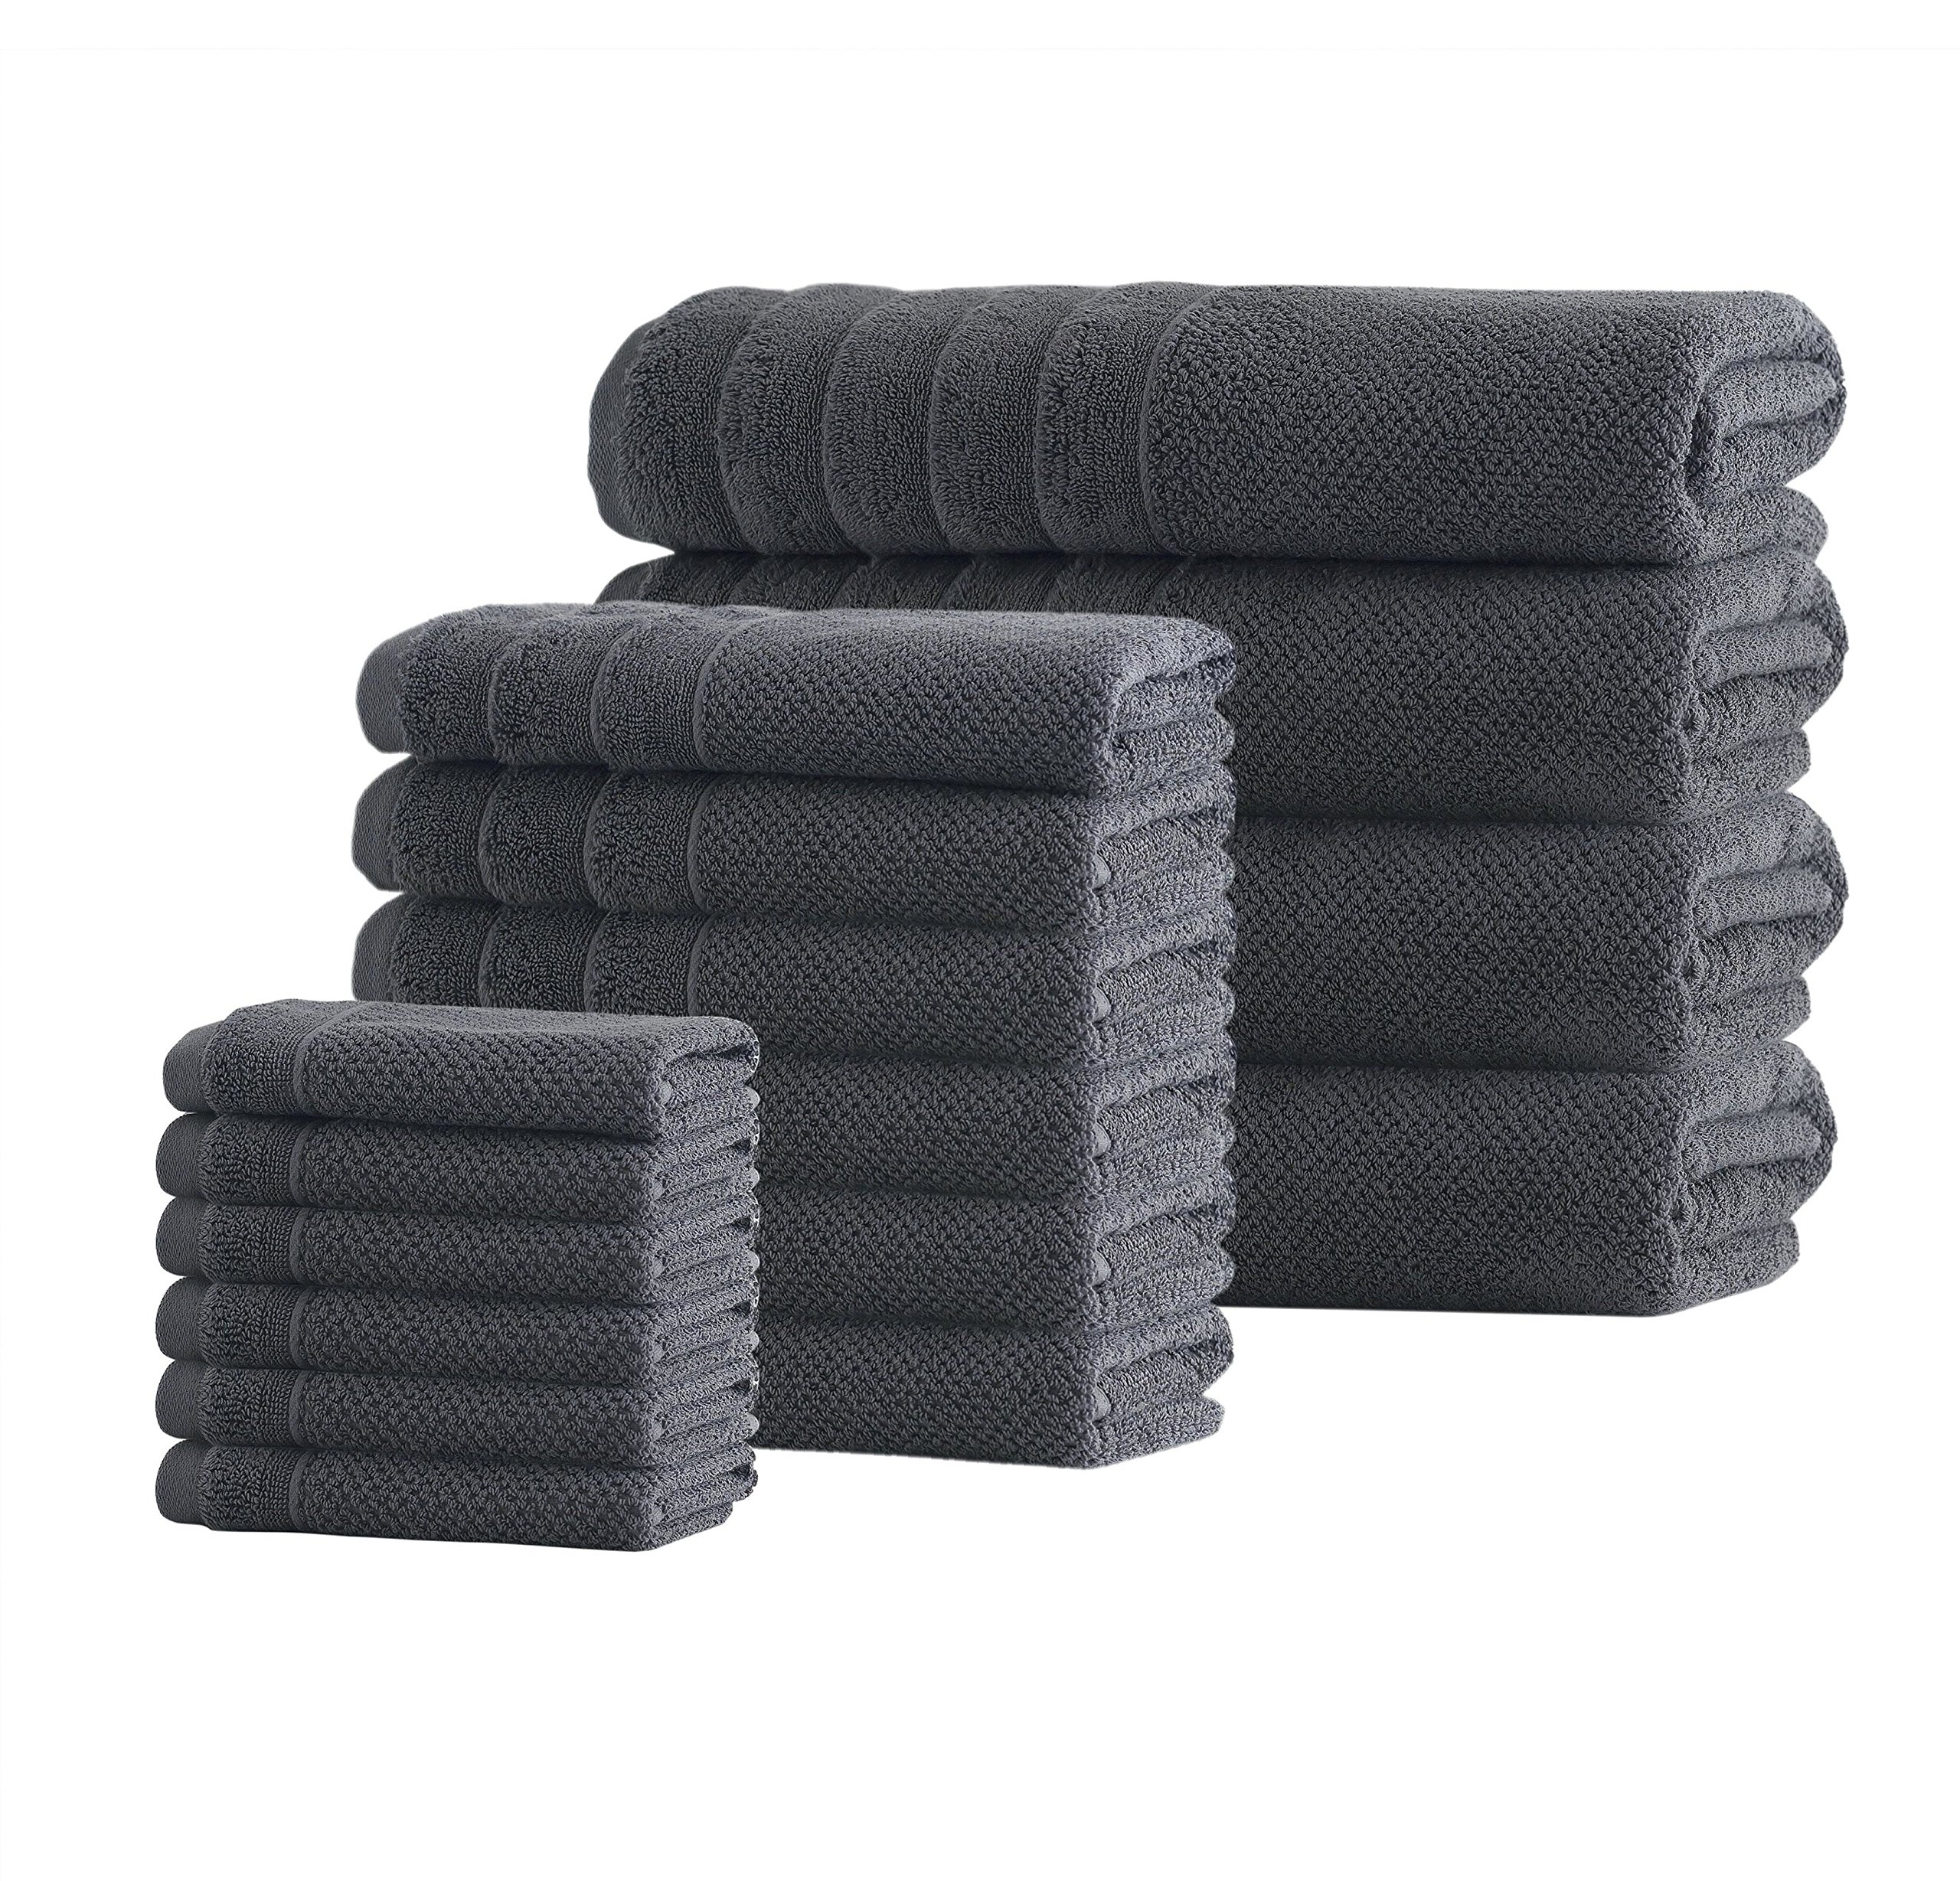 PH 16 Piece Anthracite Stripe Towel Set with 28 X 54 Inches Bath Towels, Dark Grey Textured Solid Color Quick Dry Terry Cloth Extra Long Staple Soft Comfortable Modern Stylish Towels, Turkish Cotton